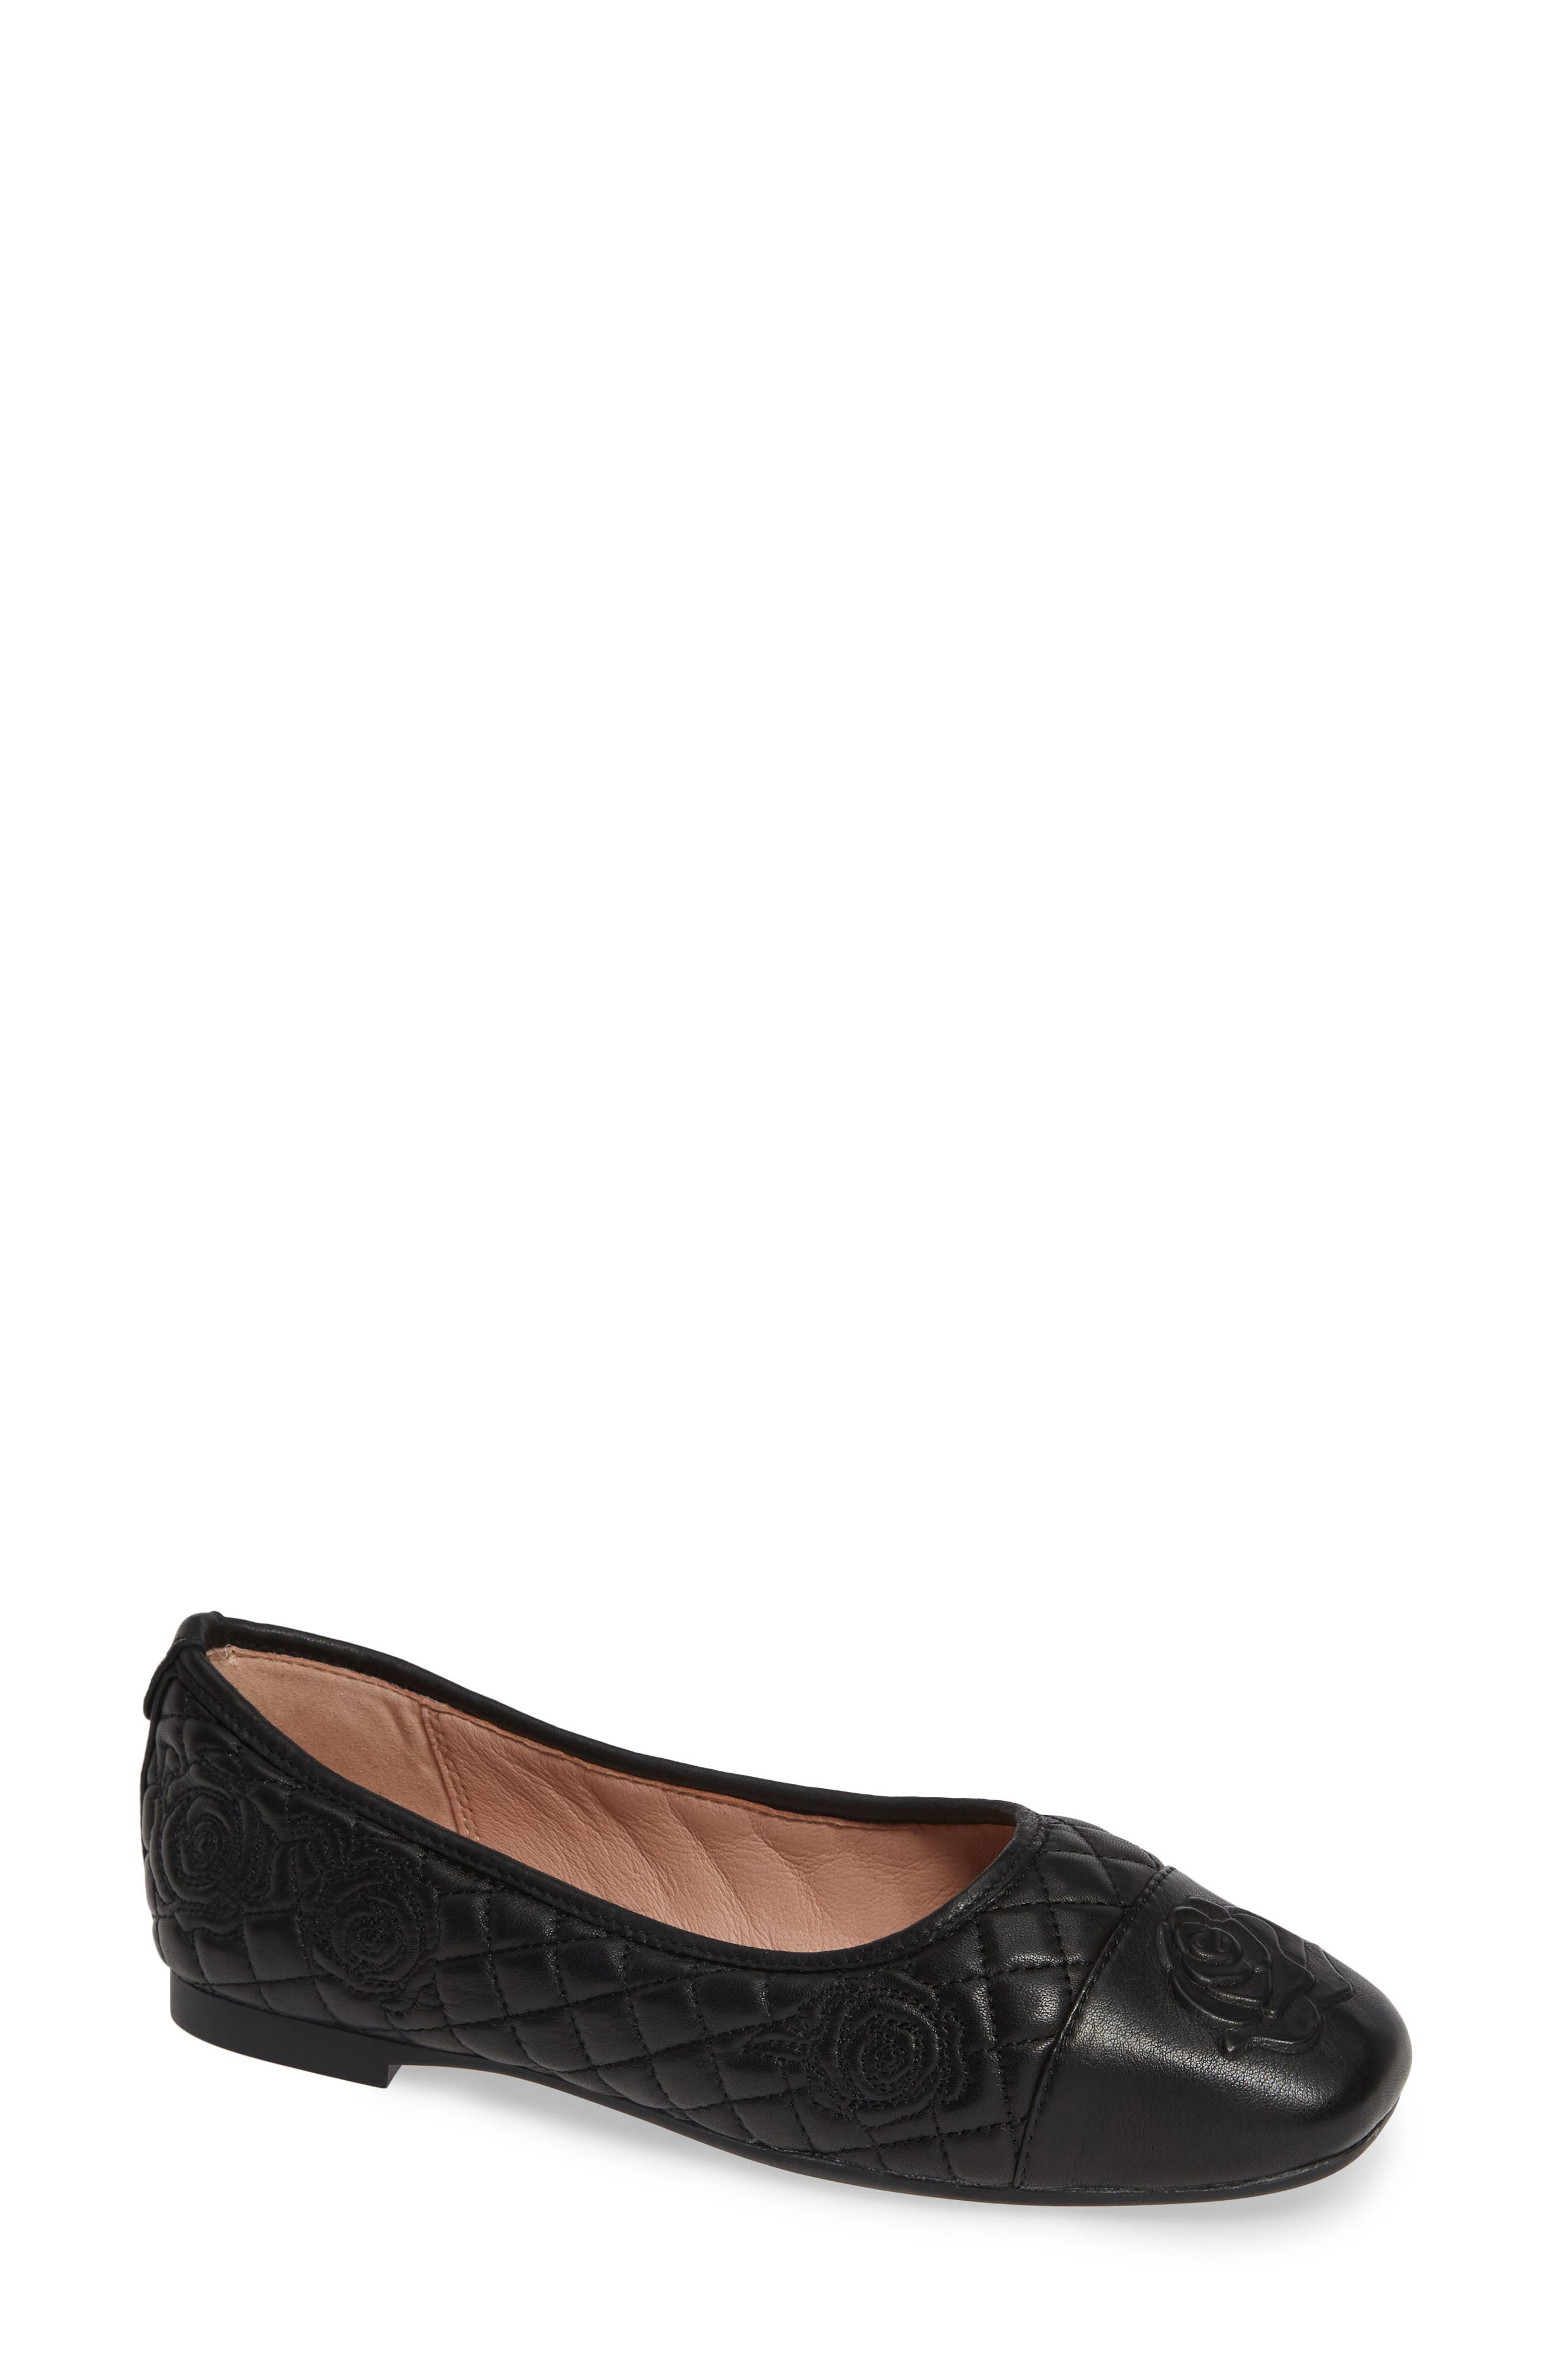 Taryn Rose Reese Embroidered Flat